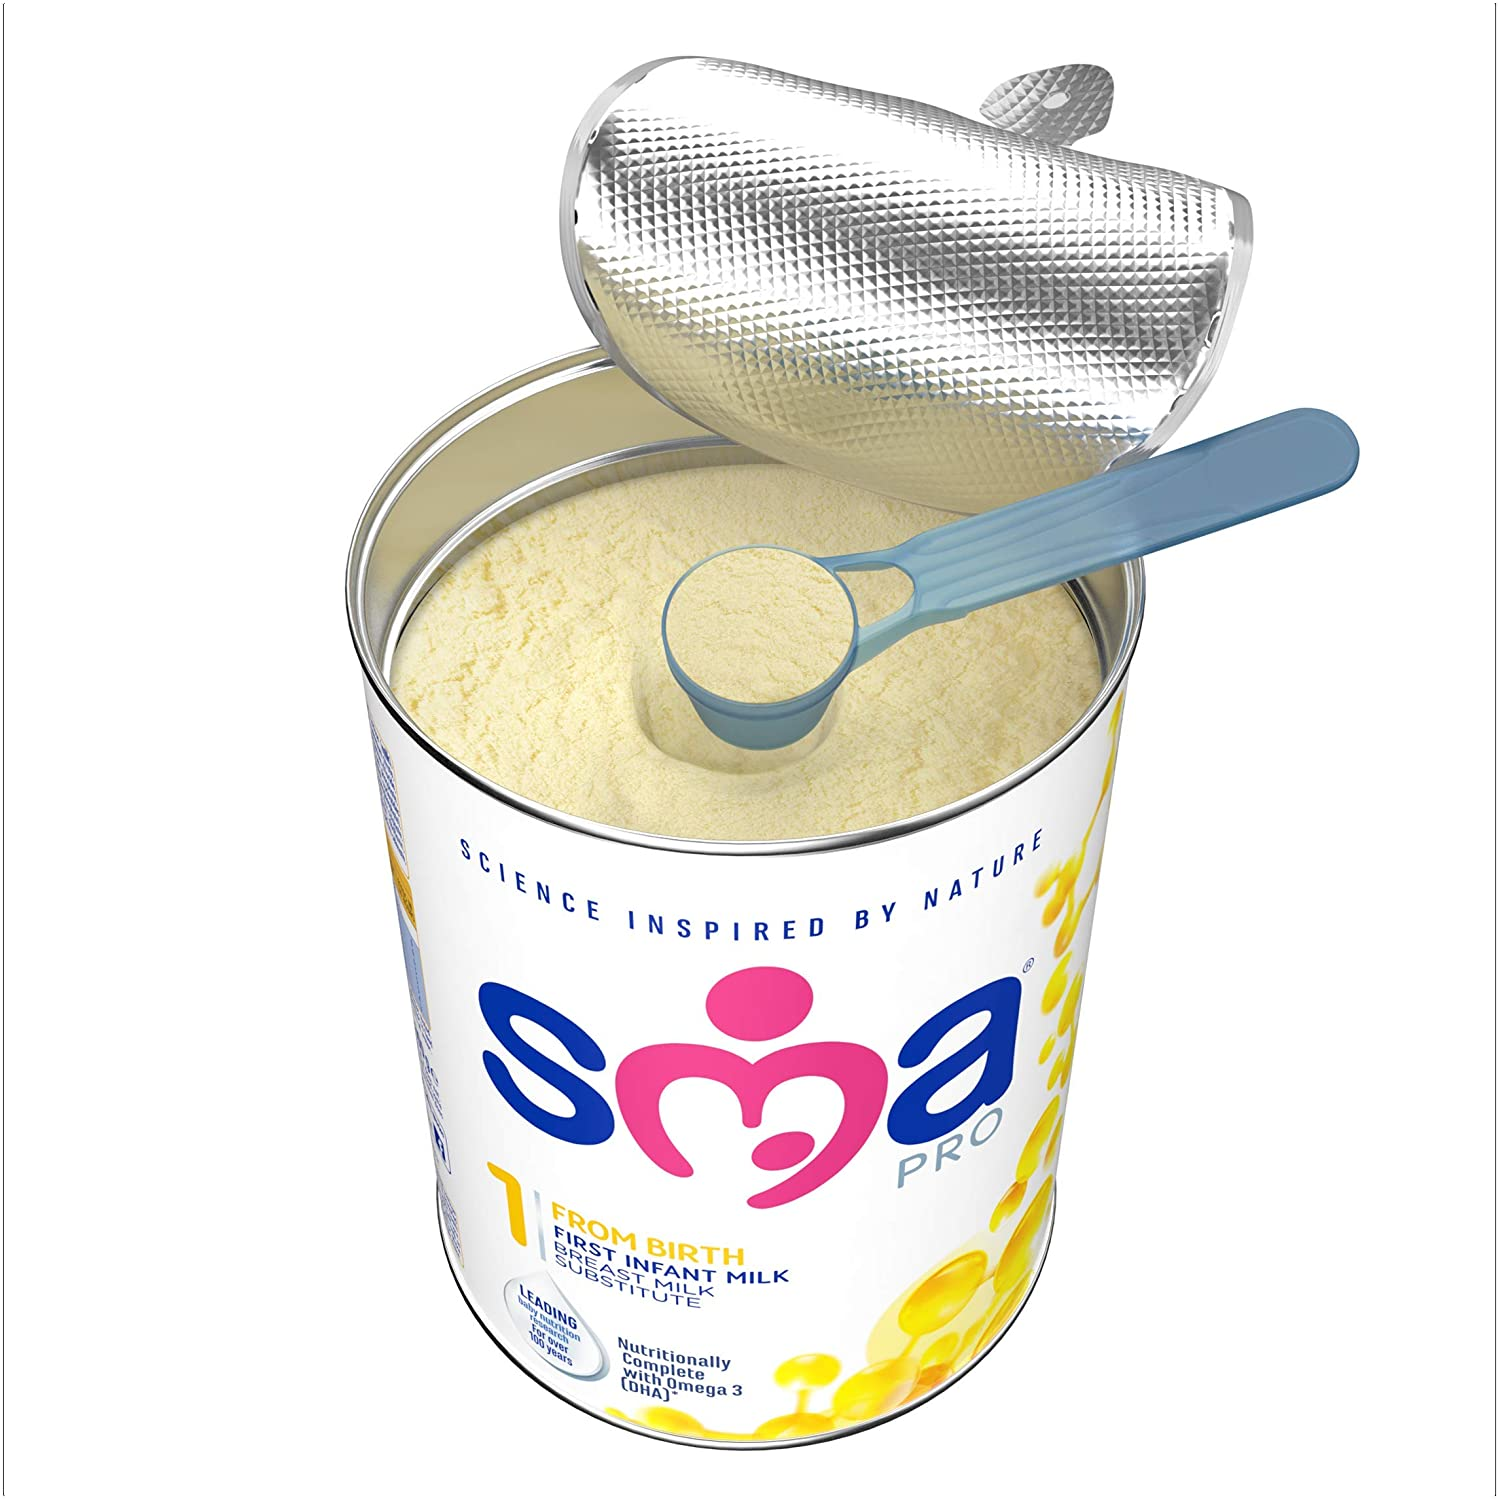 Sma Pro First Infant Milk From Birth, 800g